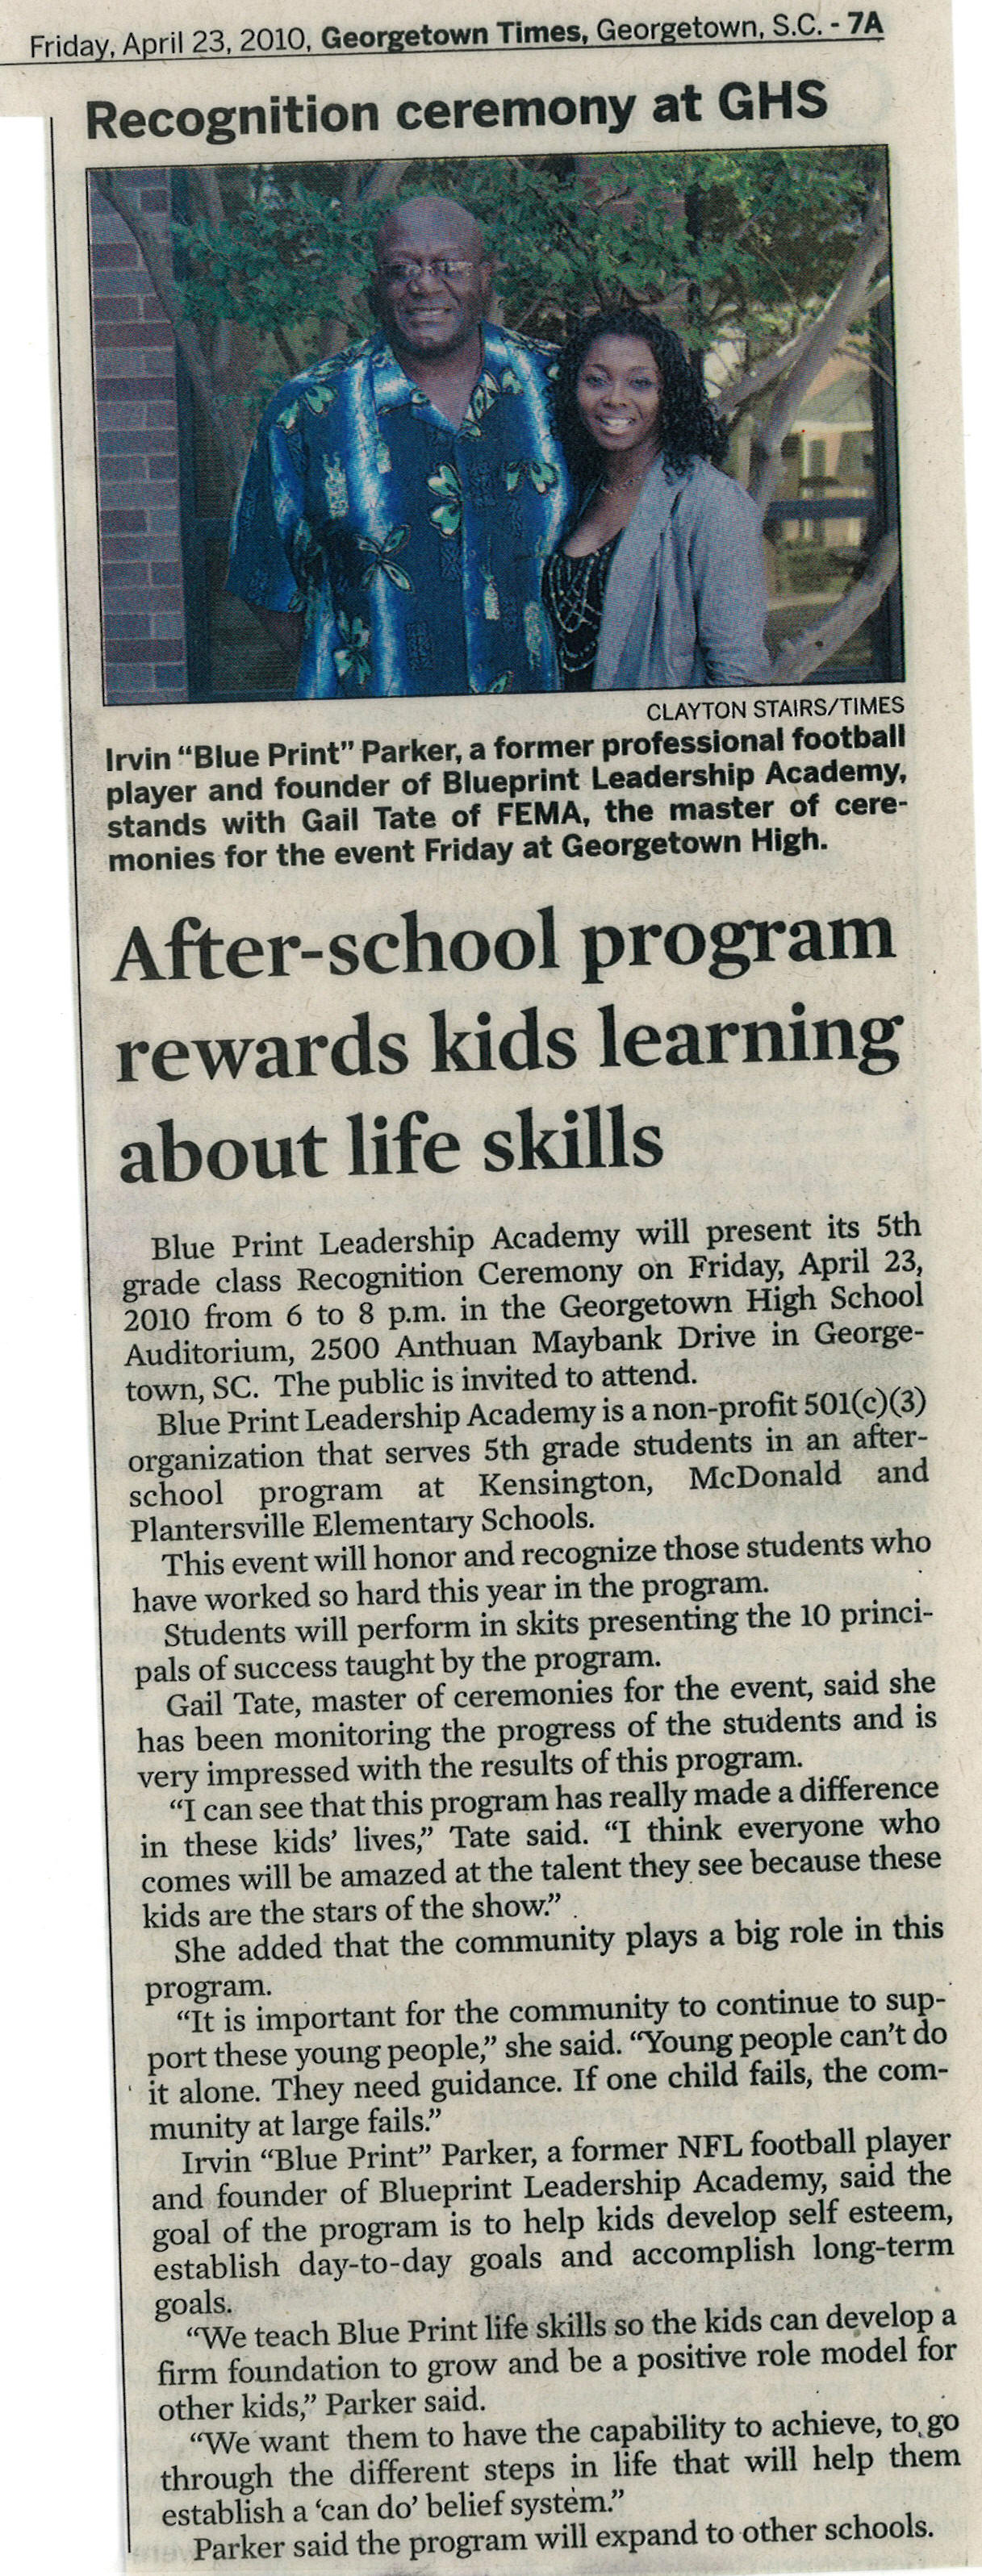 Blueprint leadership academy press releases by clayton stairs georgetown times 2010 malvernweather Image collections